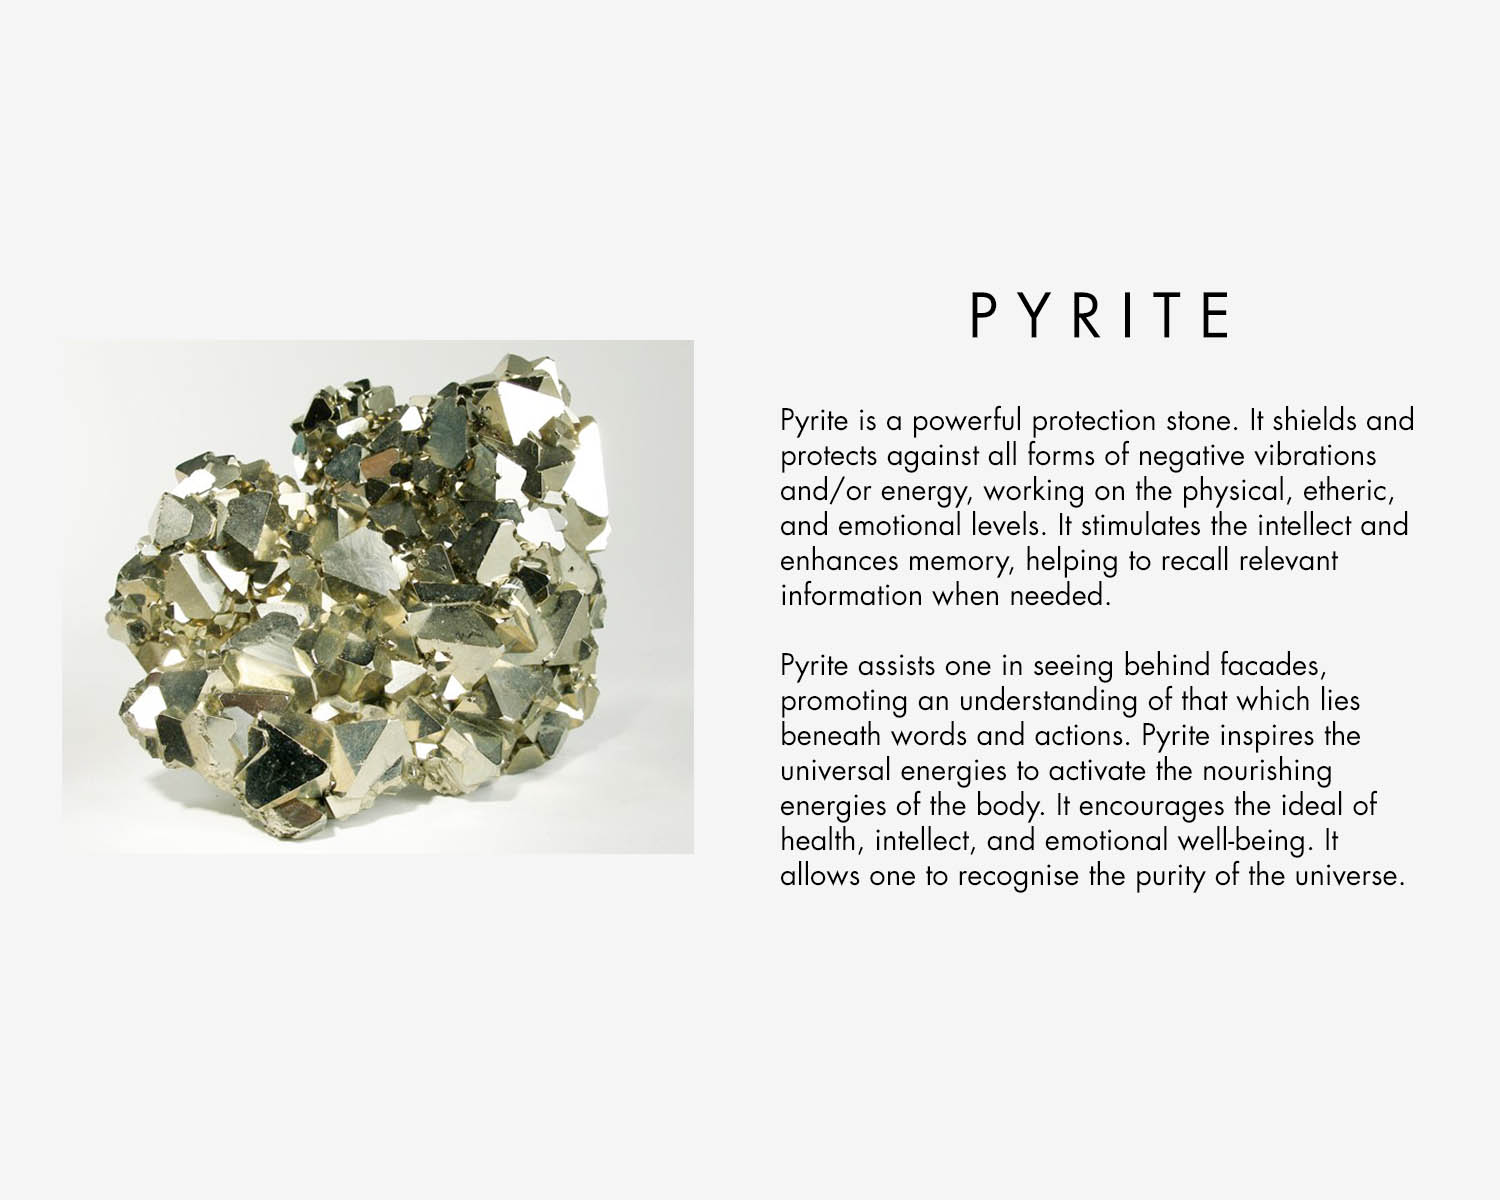 Pyrite Crystal Properties -Pyrite is a powerful stone. It should and protects agains all forms of negative vibratios and / or energy, working on the physical, ethers and emotional levels. It stimulates the intellect and enhances memory, helping to recall relevant information when needed.  Pyrite assist one in seeing behind facades, promoting an understanding of that which lies beneath words and actions. Pyrite inspires the universal energies to activate the nourishing energies of the body. It encourages the ideal of health, intellect and emotional well-being. It allows one to recognise the purity of the universe.